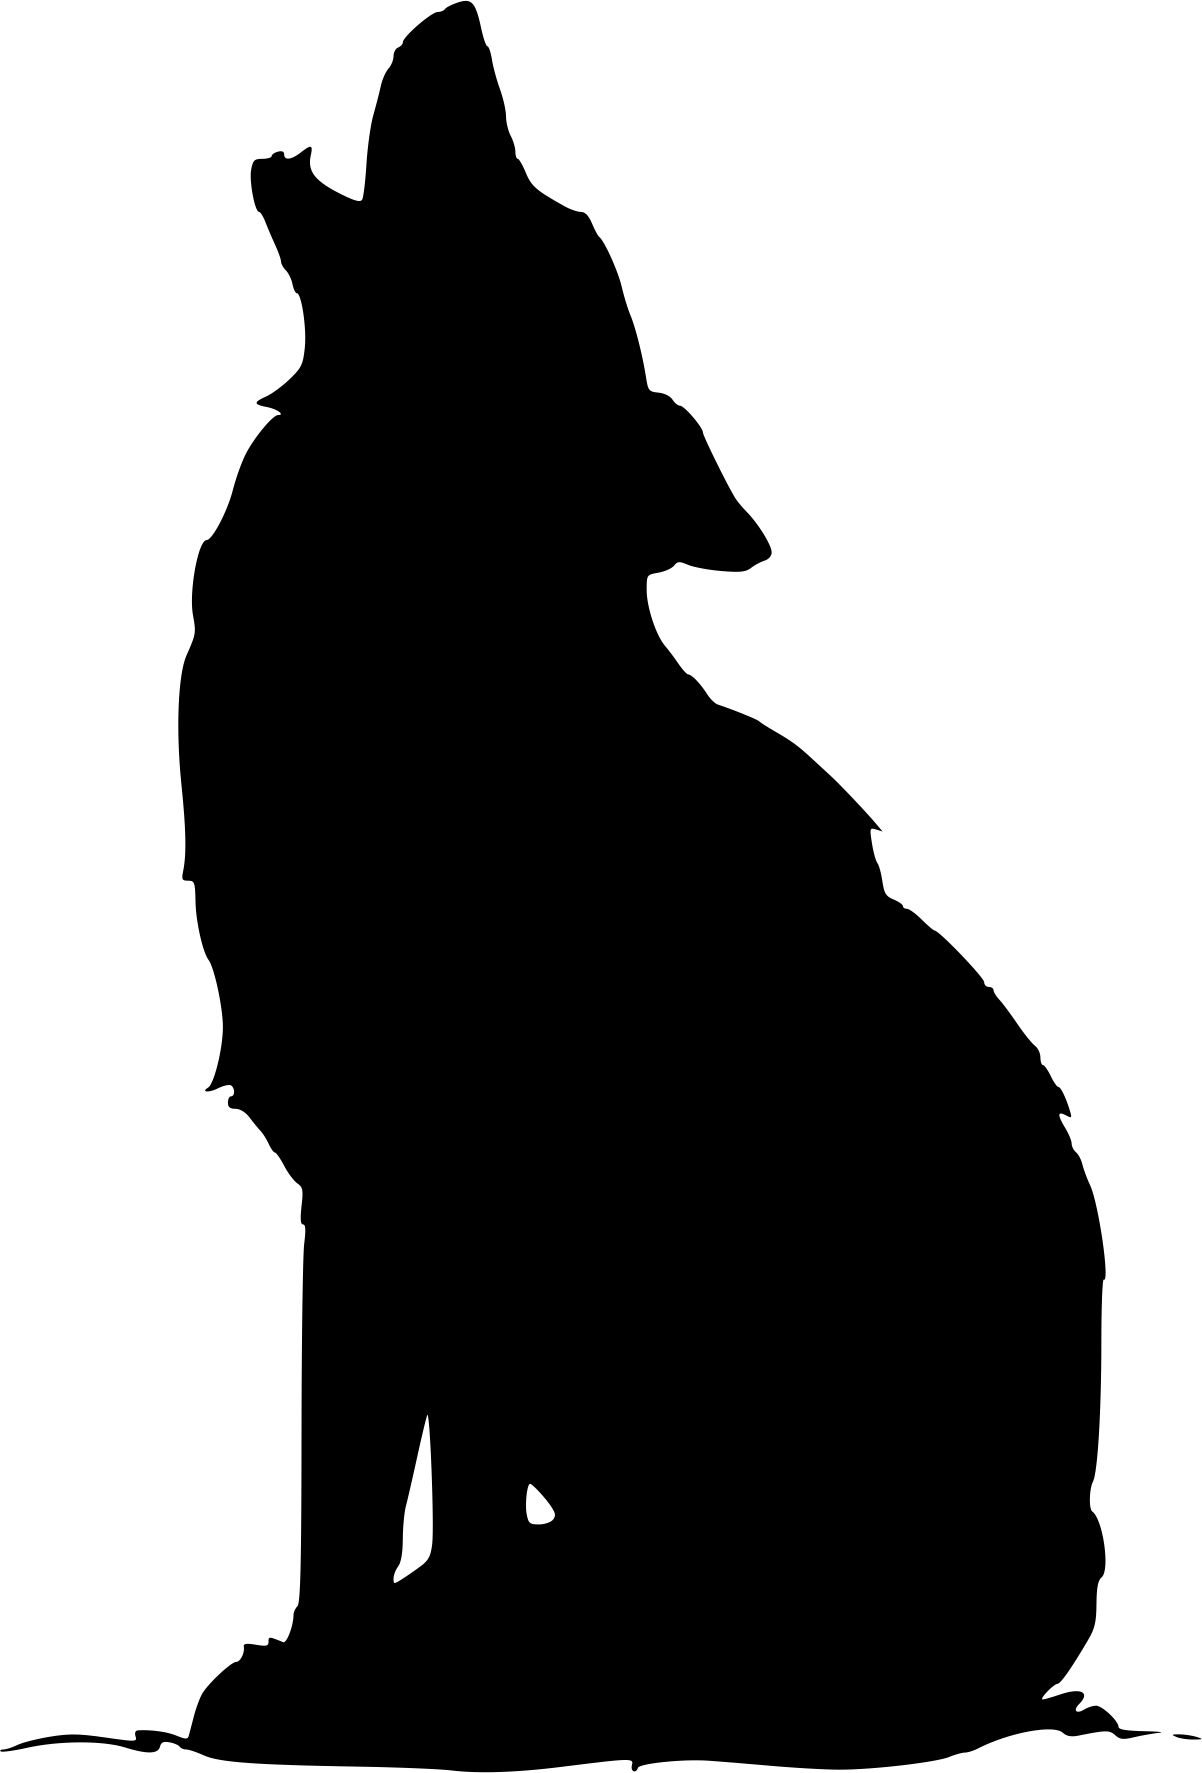 Tired clipart wolf. Silhouette vinyl decal pinterest